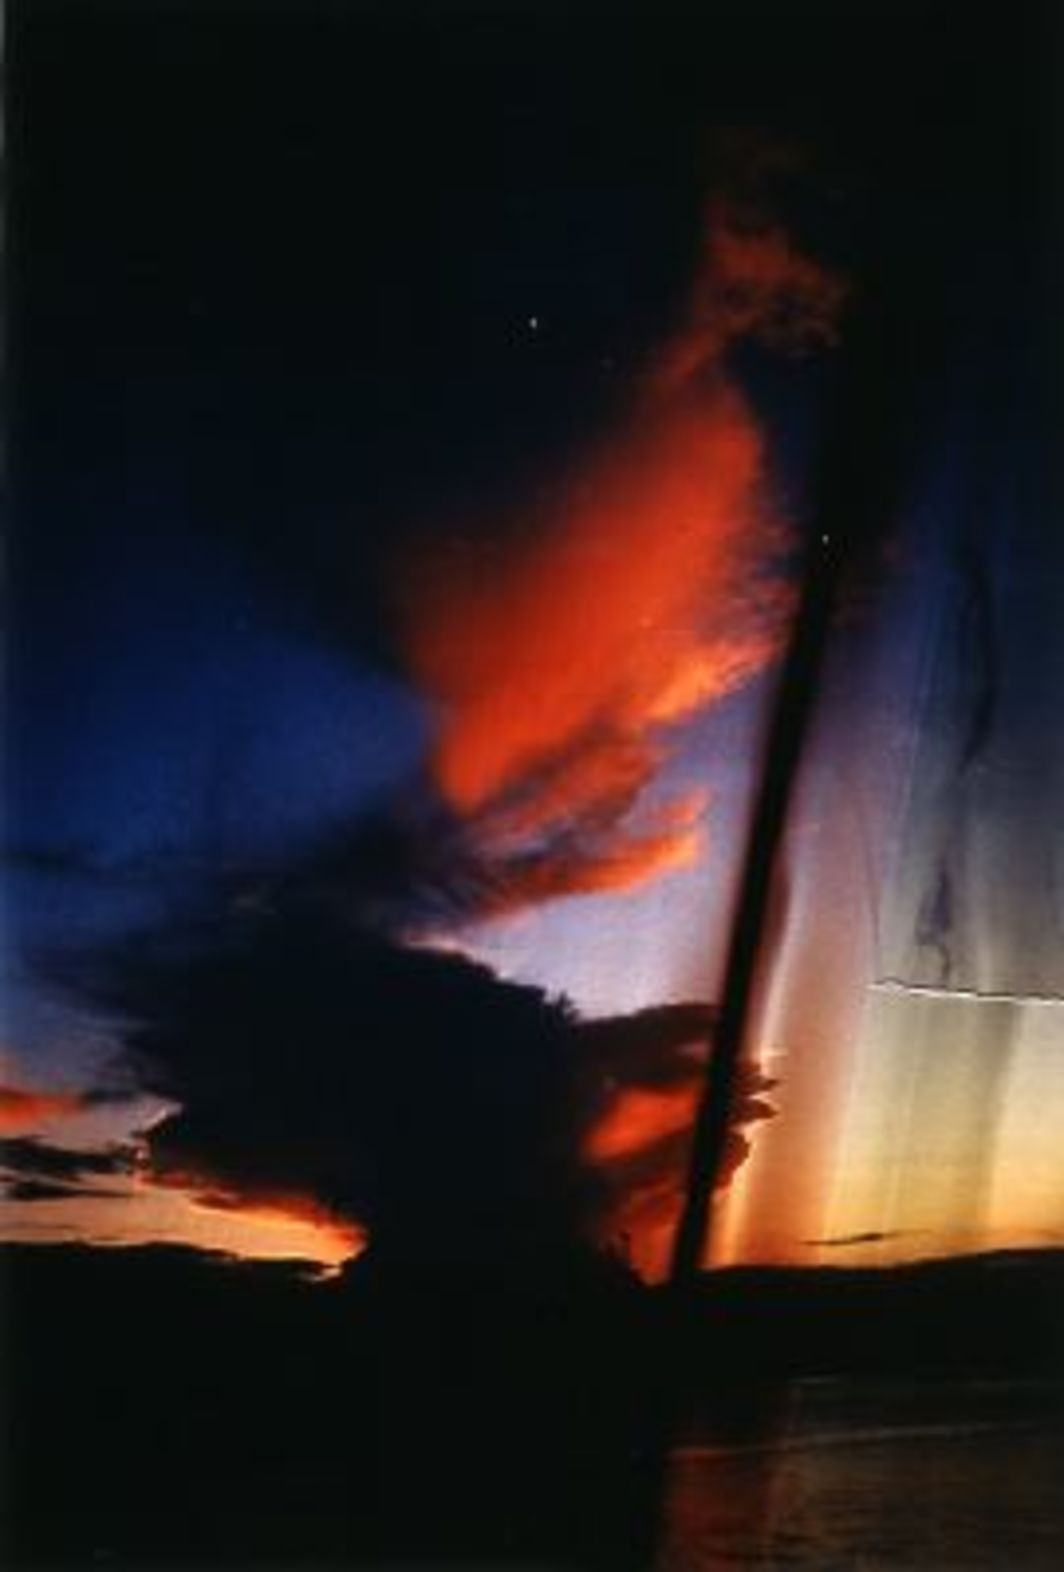 Wolfgang Tillmans, Conquistador II, 2000, color photograph.